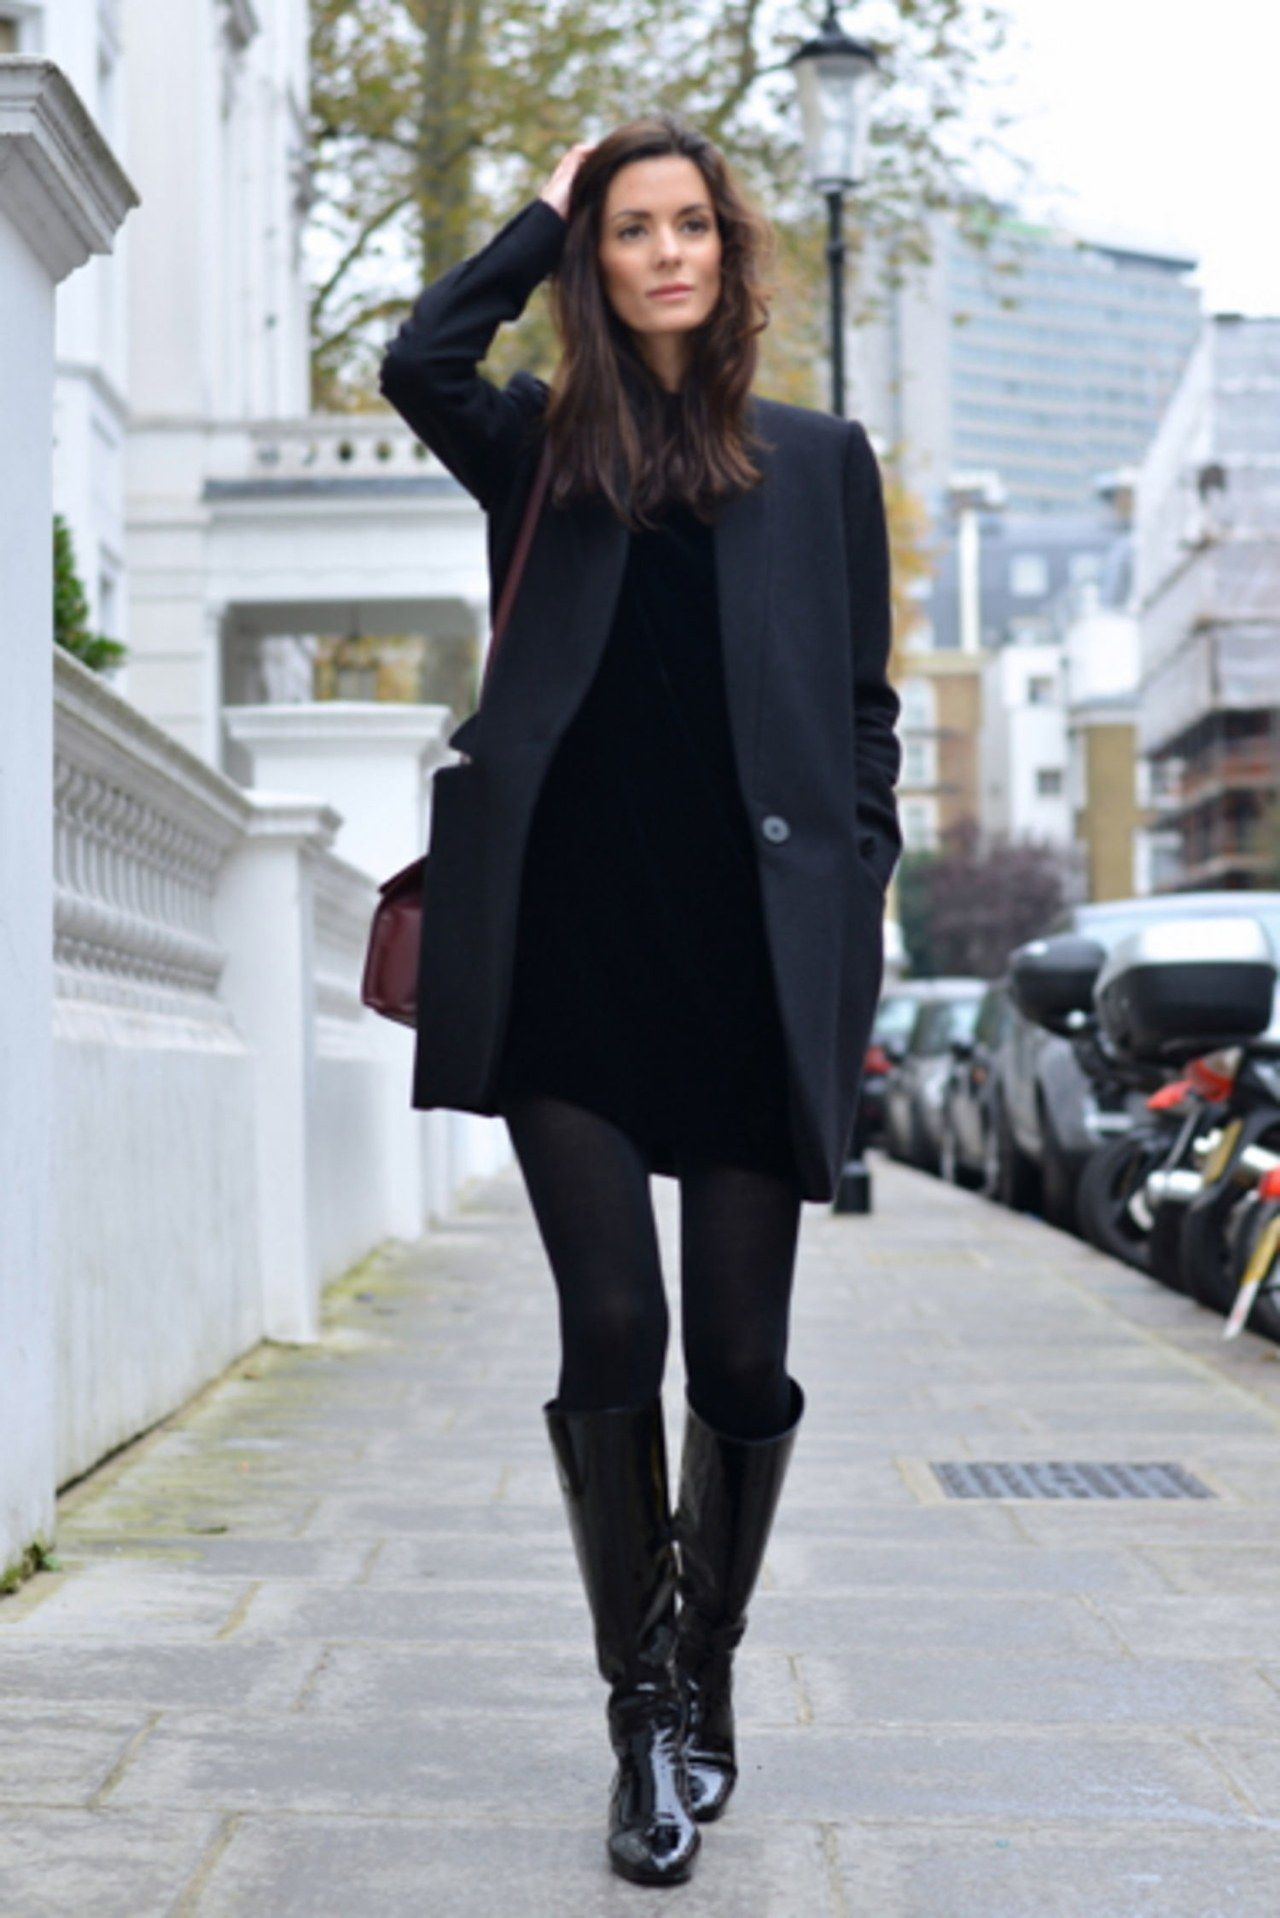 975ff2351c7 Try These 7 Super-Stylish Ways to Wear Your Knee-High Boots Right ...